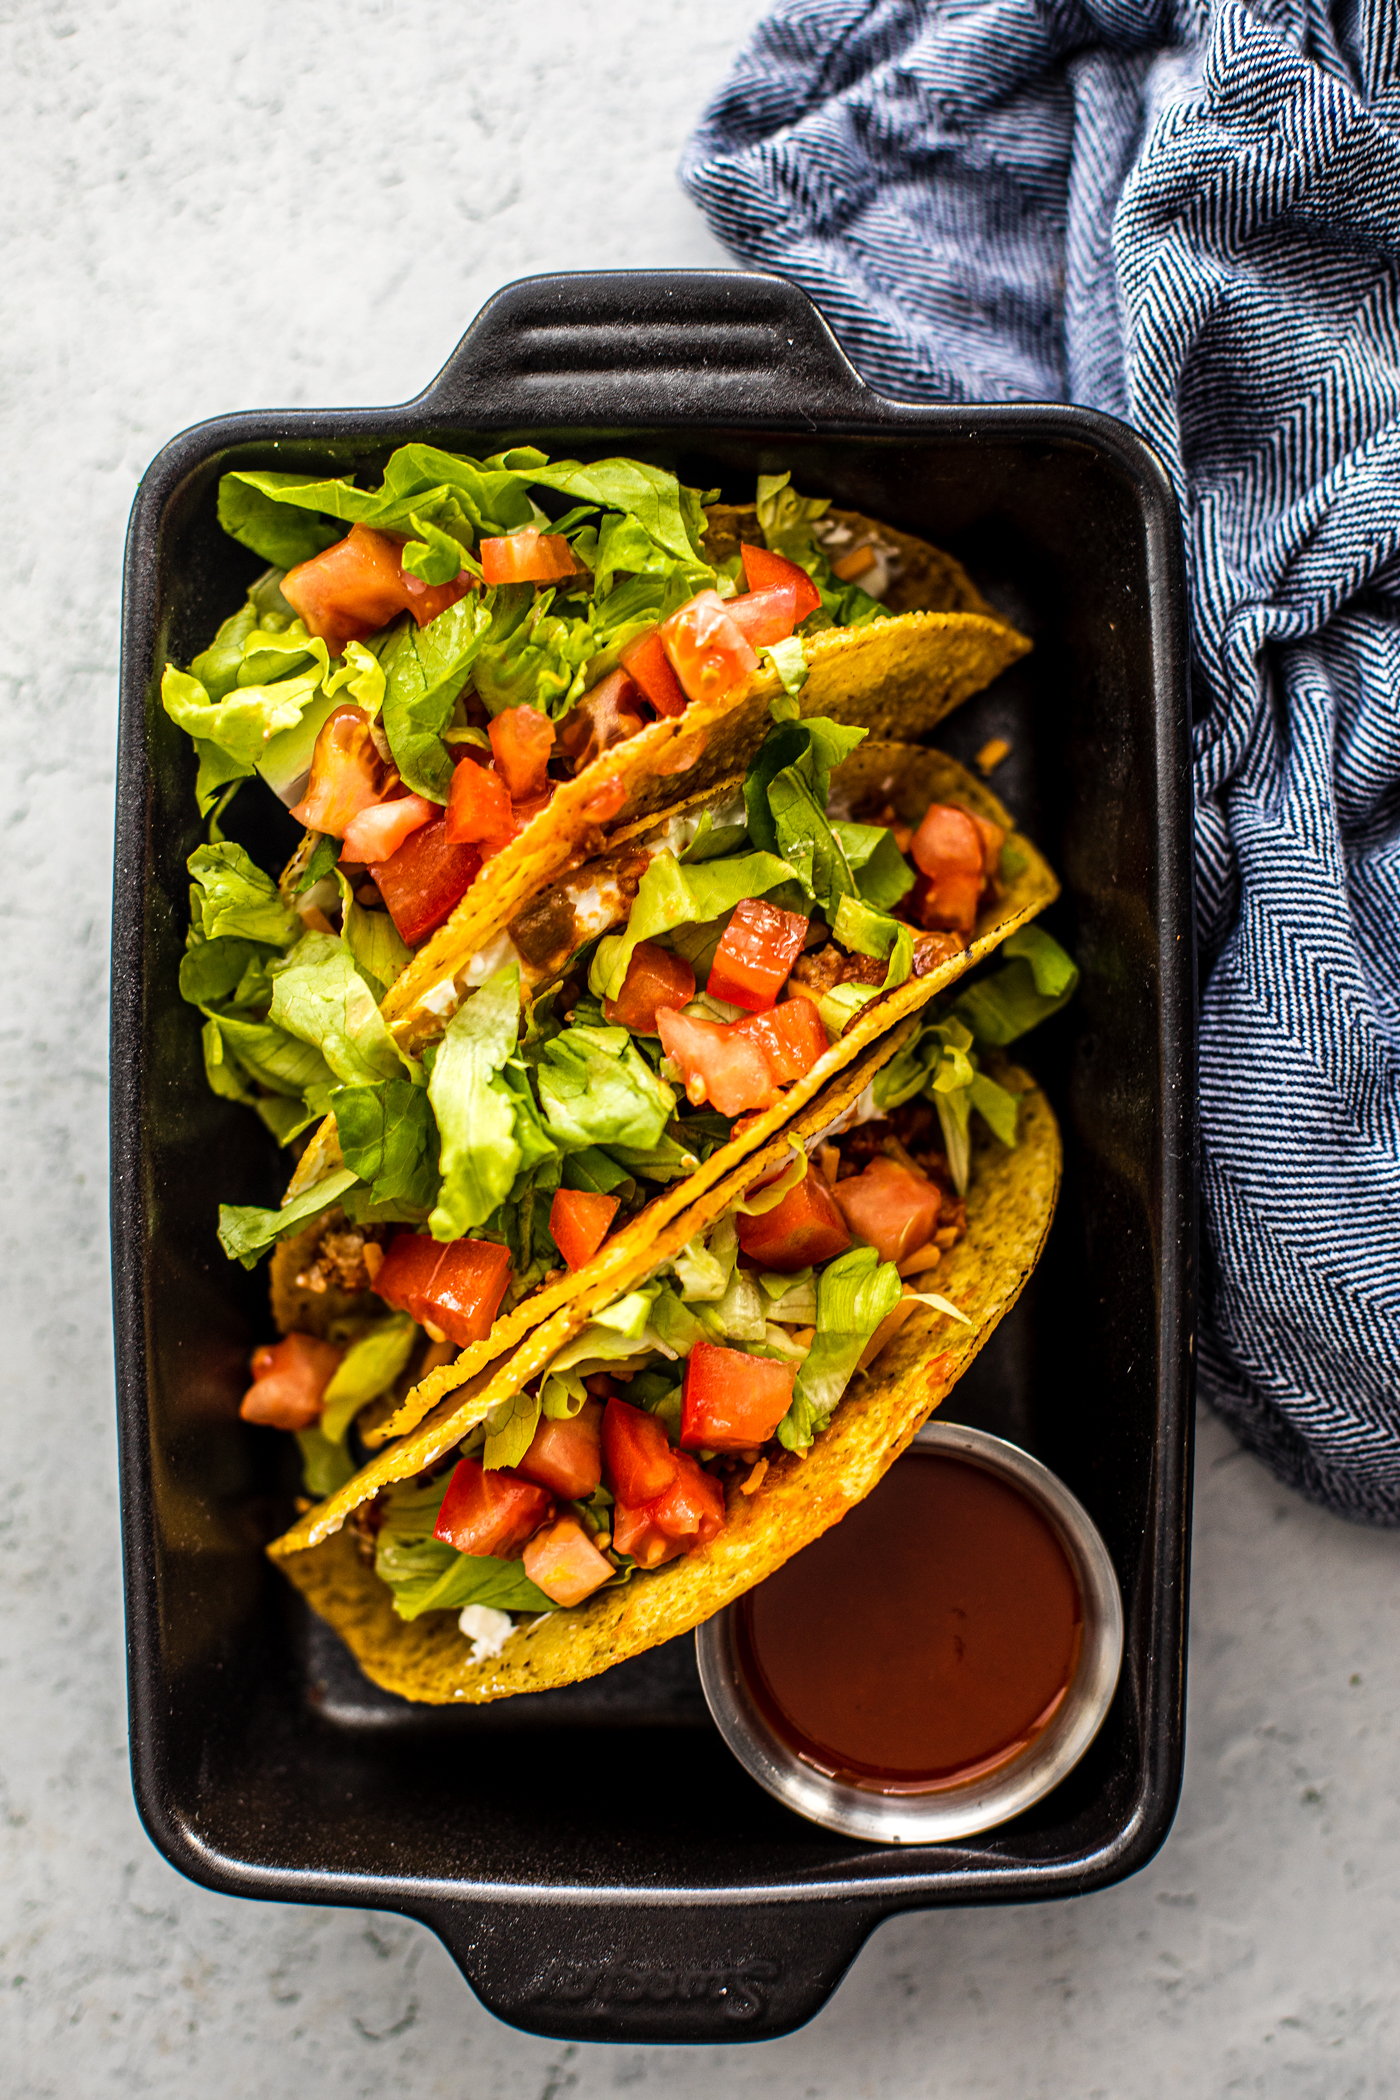 Small black cast iron pan holding tacos topped with tomatoes and lettuce.